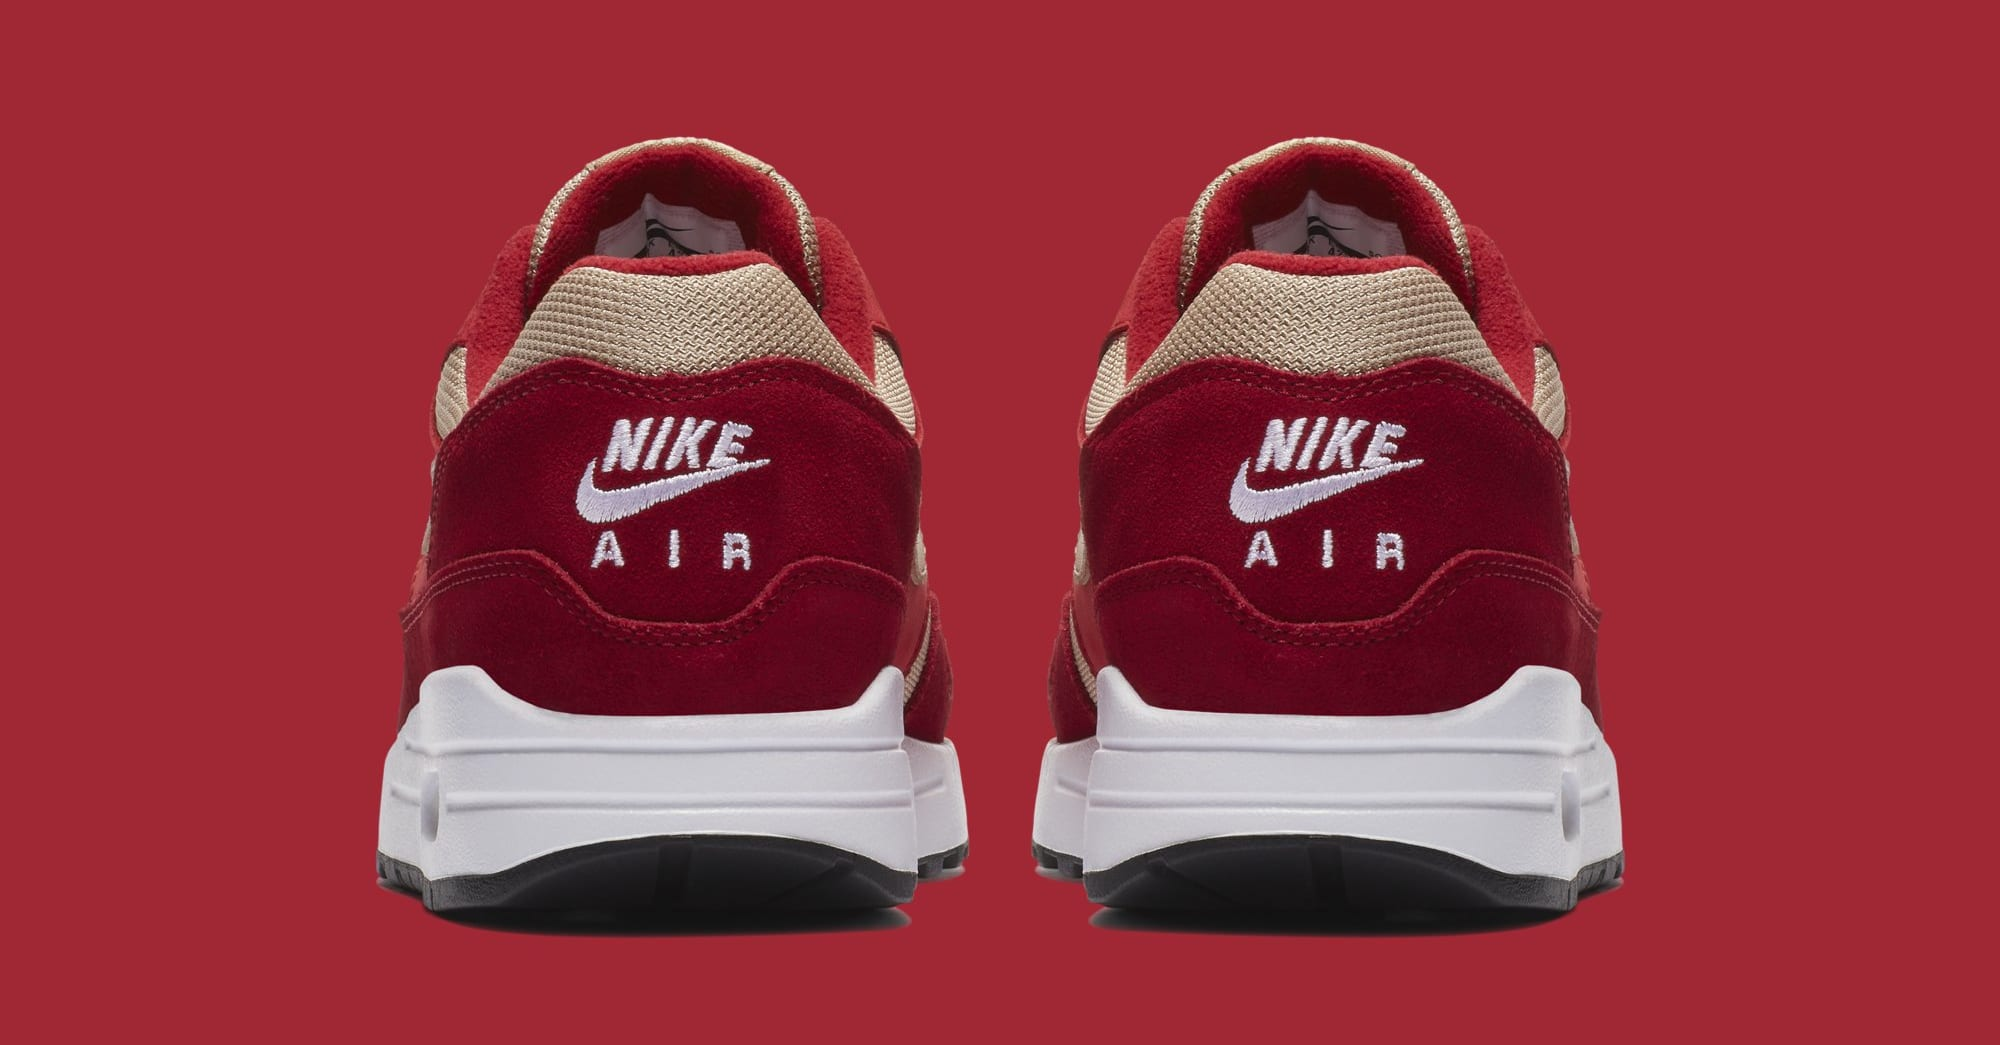 Atmos x Nike Air Max 1 'Red Curry' 908366-600 (Heel)